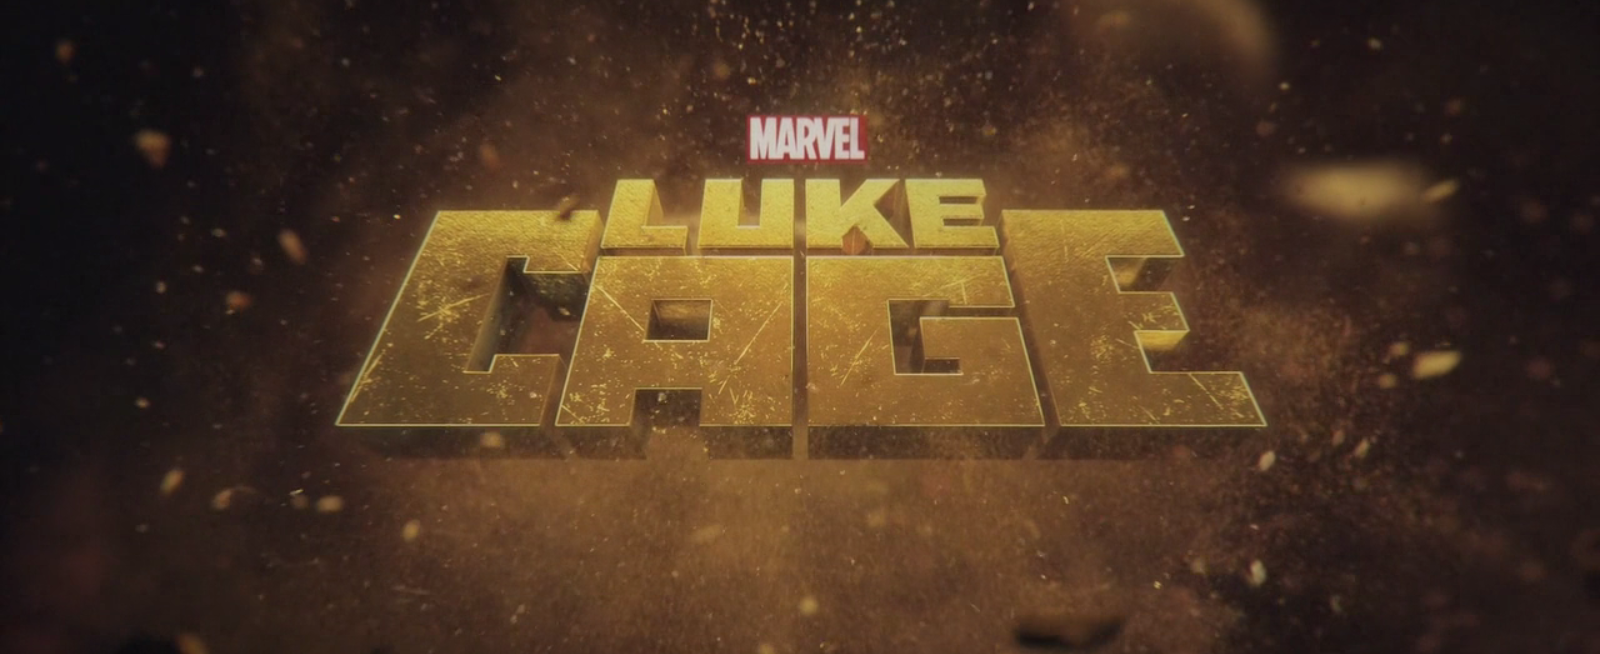 Luke cage s1 title card 1